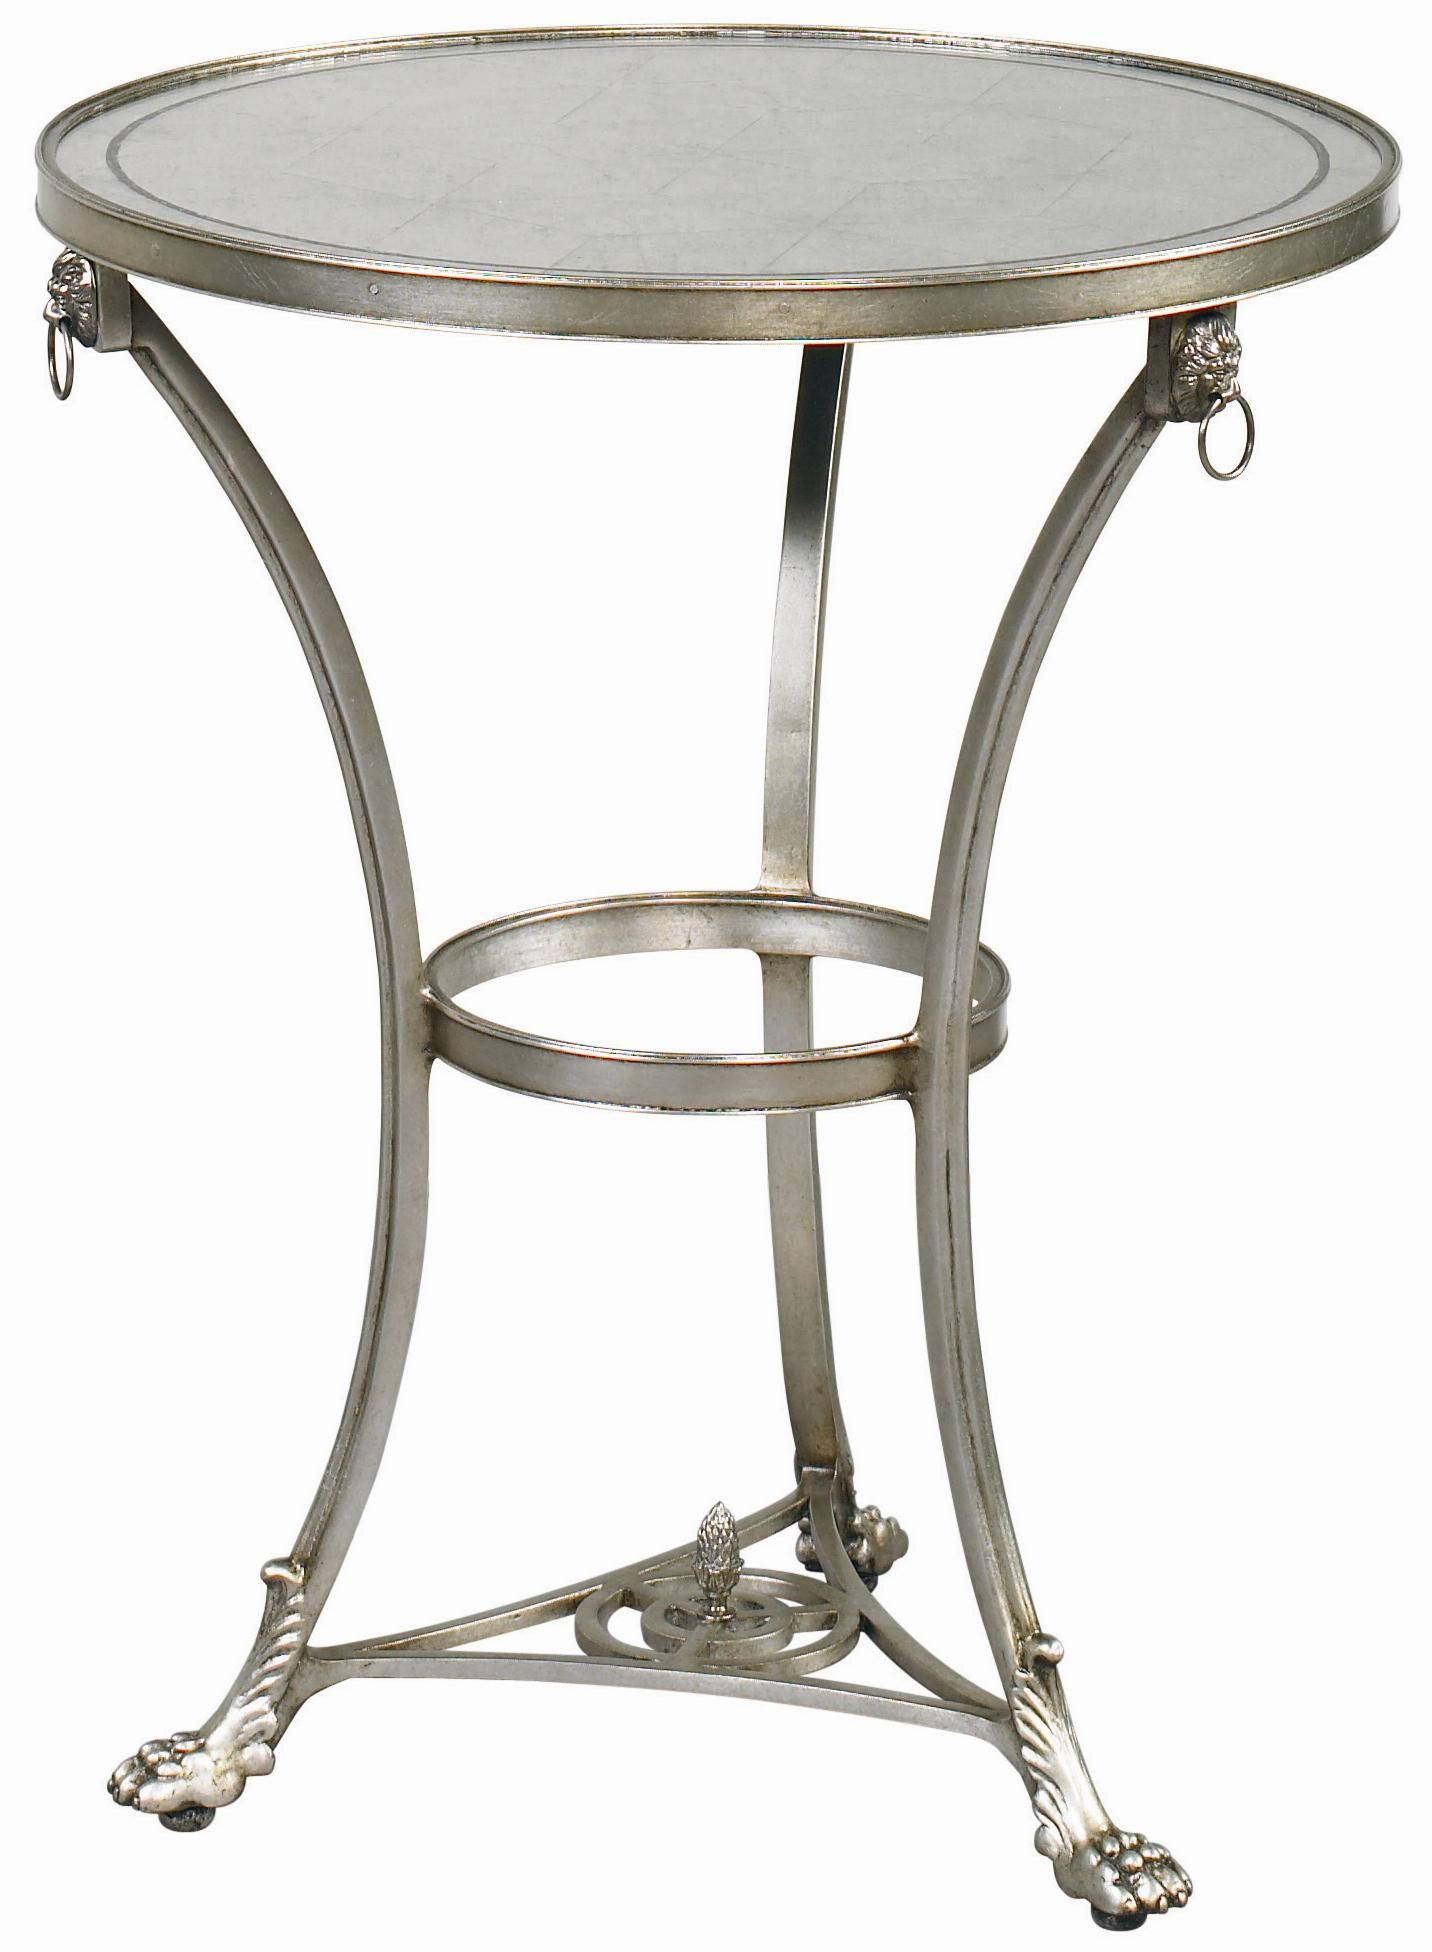 Wood Cafe Joie Table by Lillian August Mirrored side tables